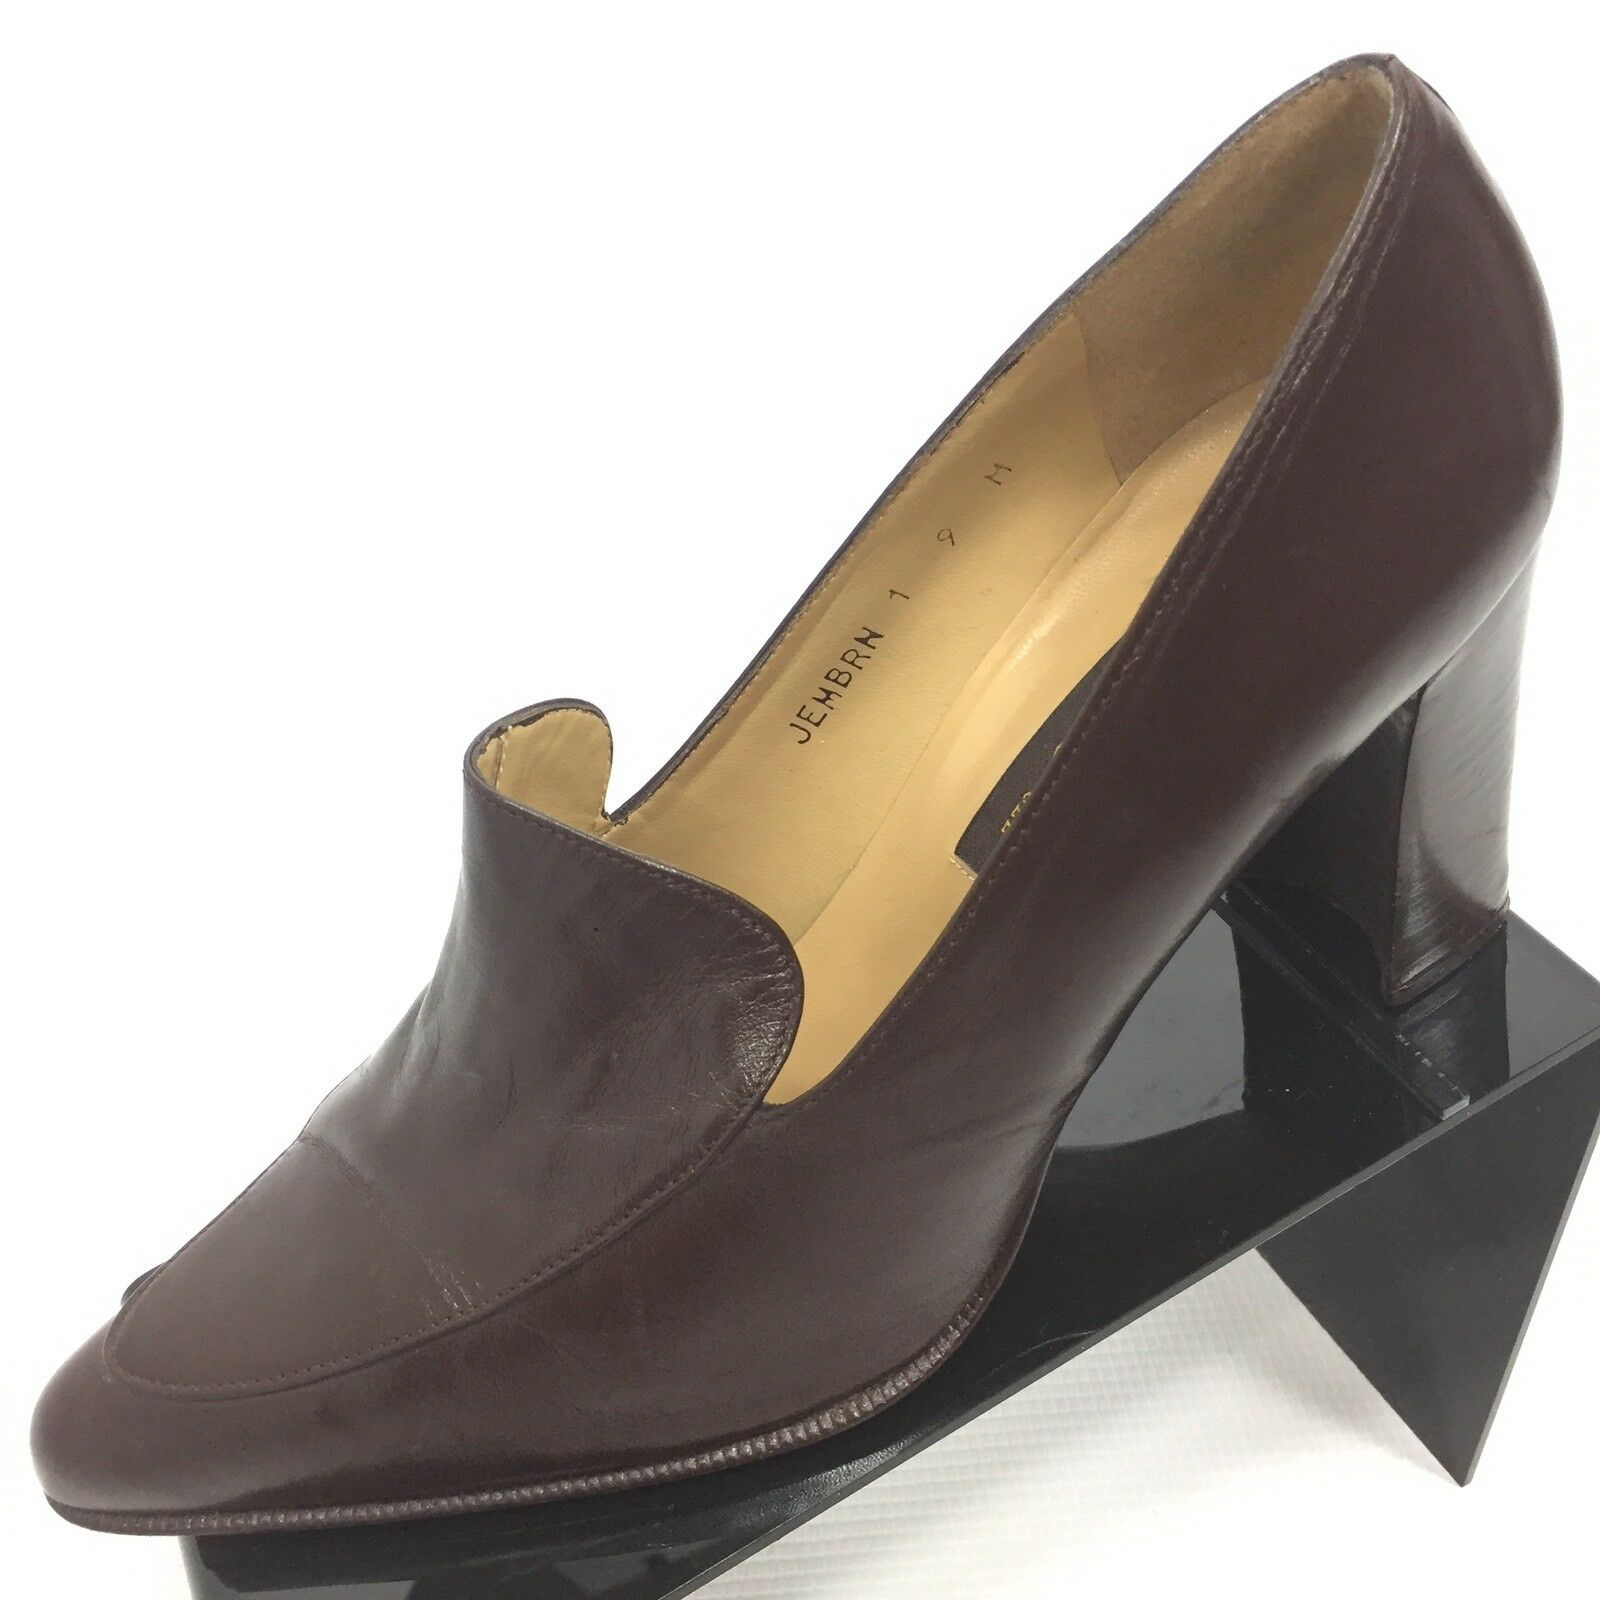 SESTO MEUCCI Women's Solid Brown Leather Apron Block 3.5  Heels 9 Made in Spain